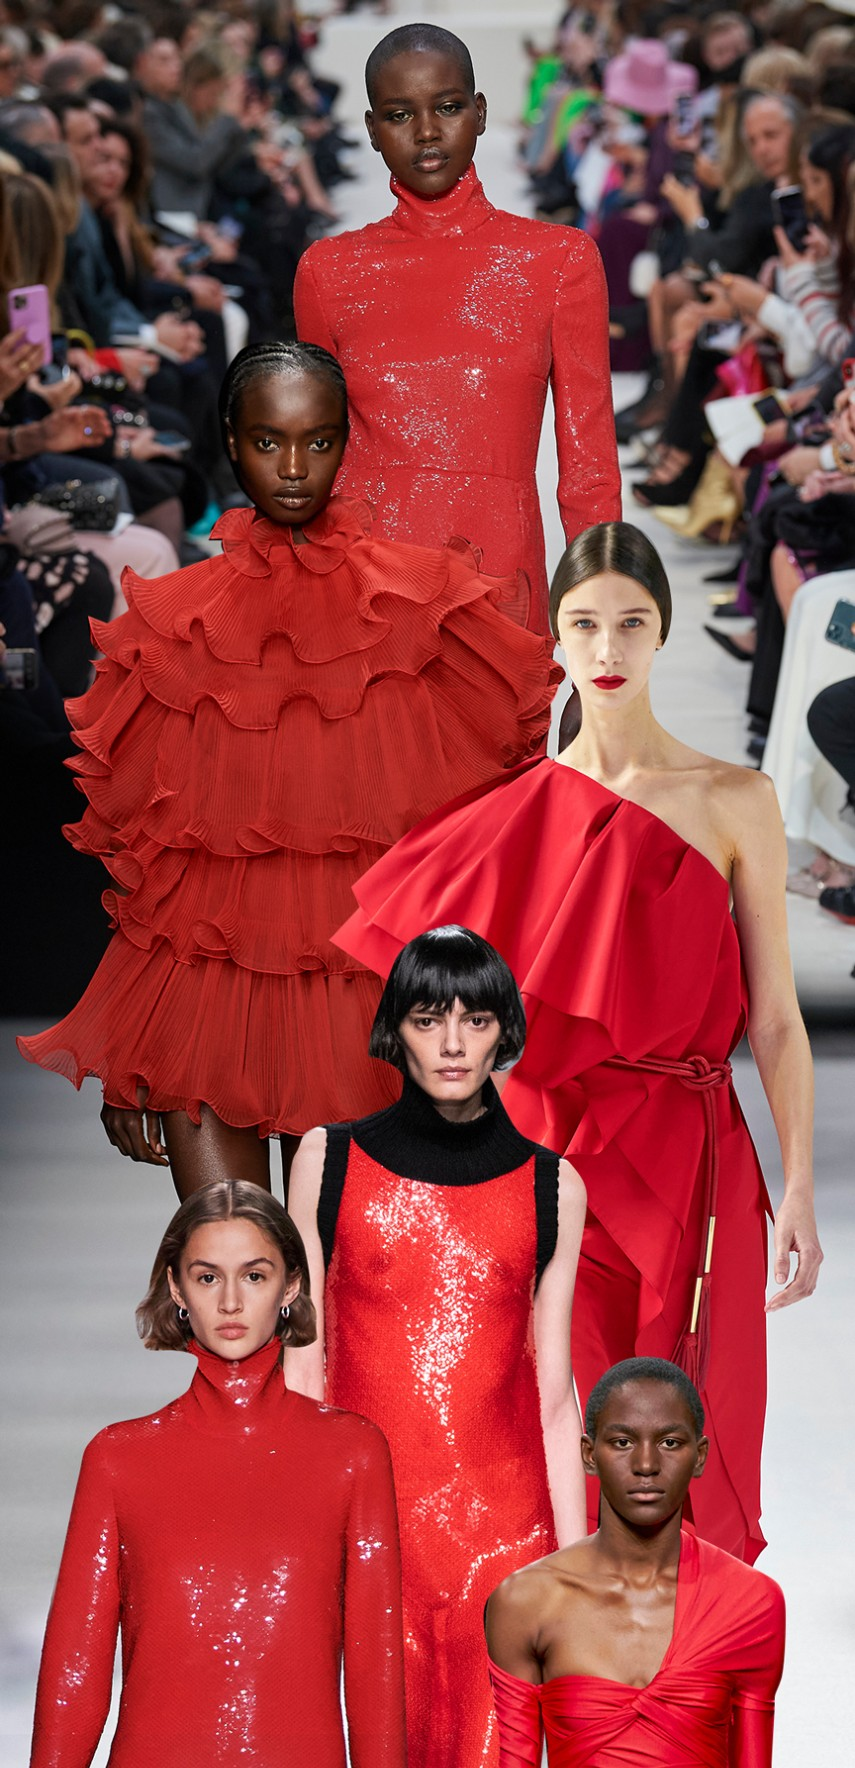 The Hottest And Most Coveted Fashion Trends From The Fall 2020 Runways (25) fashion trend The Hottest And Most Coveted Fashion Trends From The Fall 2020 Runways The Hottest And Most Coveted Fashion Trends From The Fall 2020 Runways 25